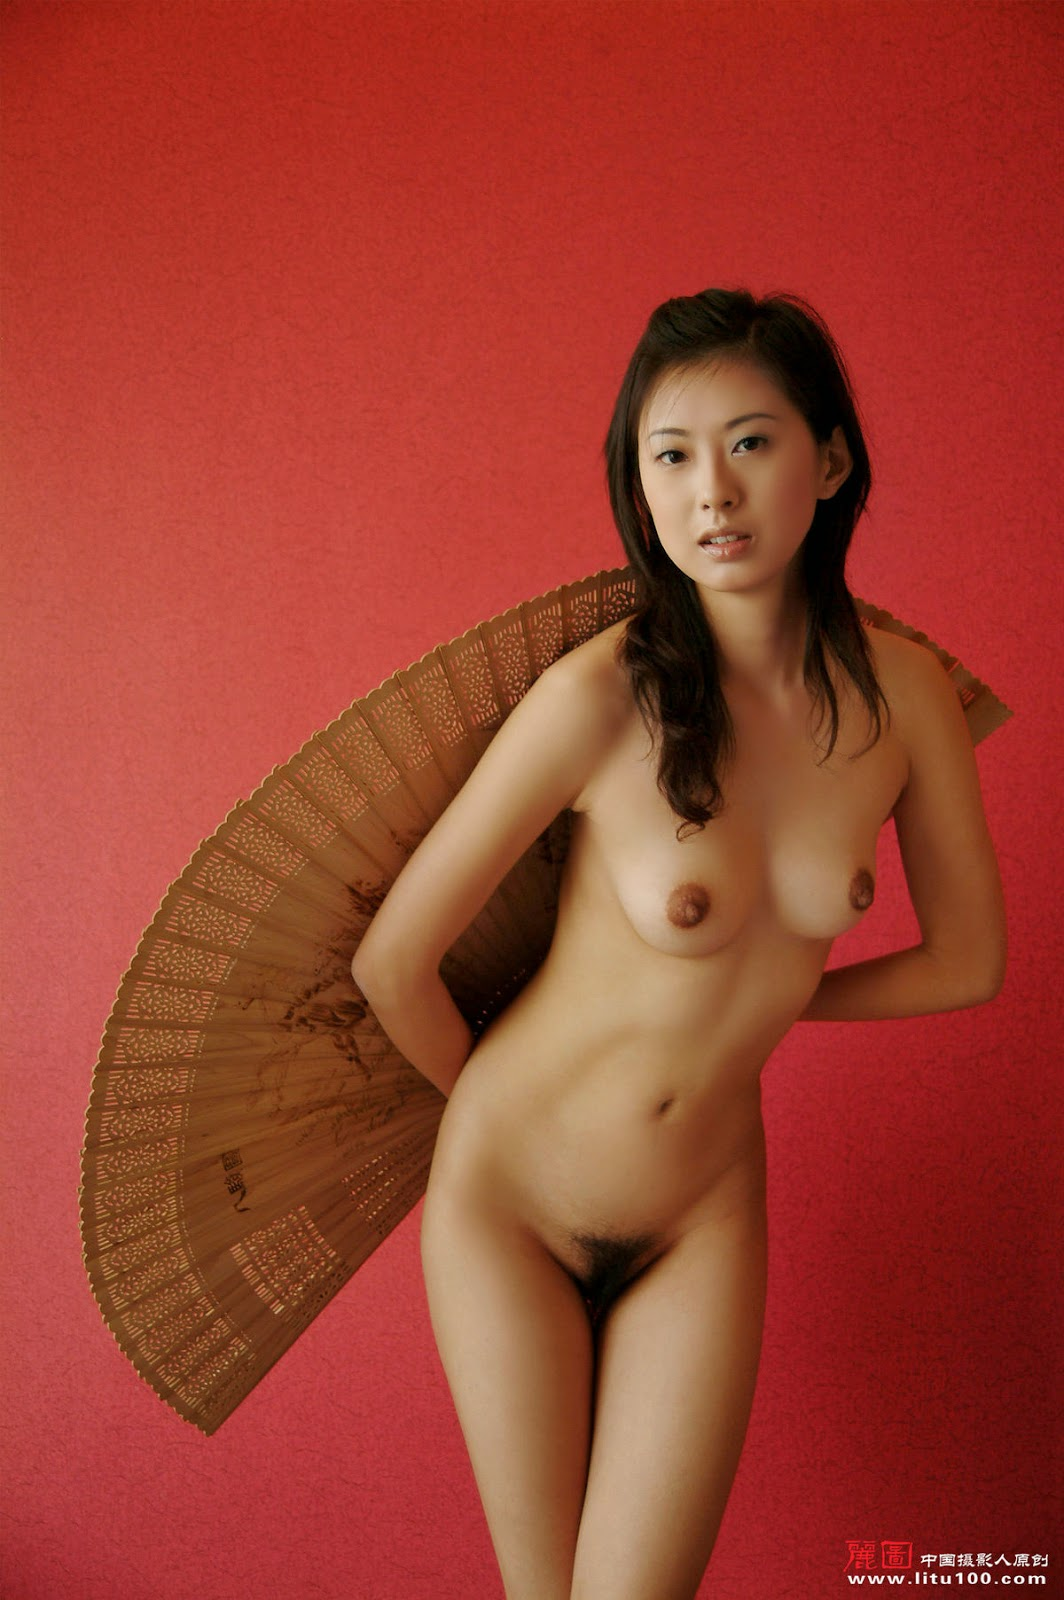 Situation Taiwanese artist naked photo absolutely not